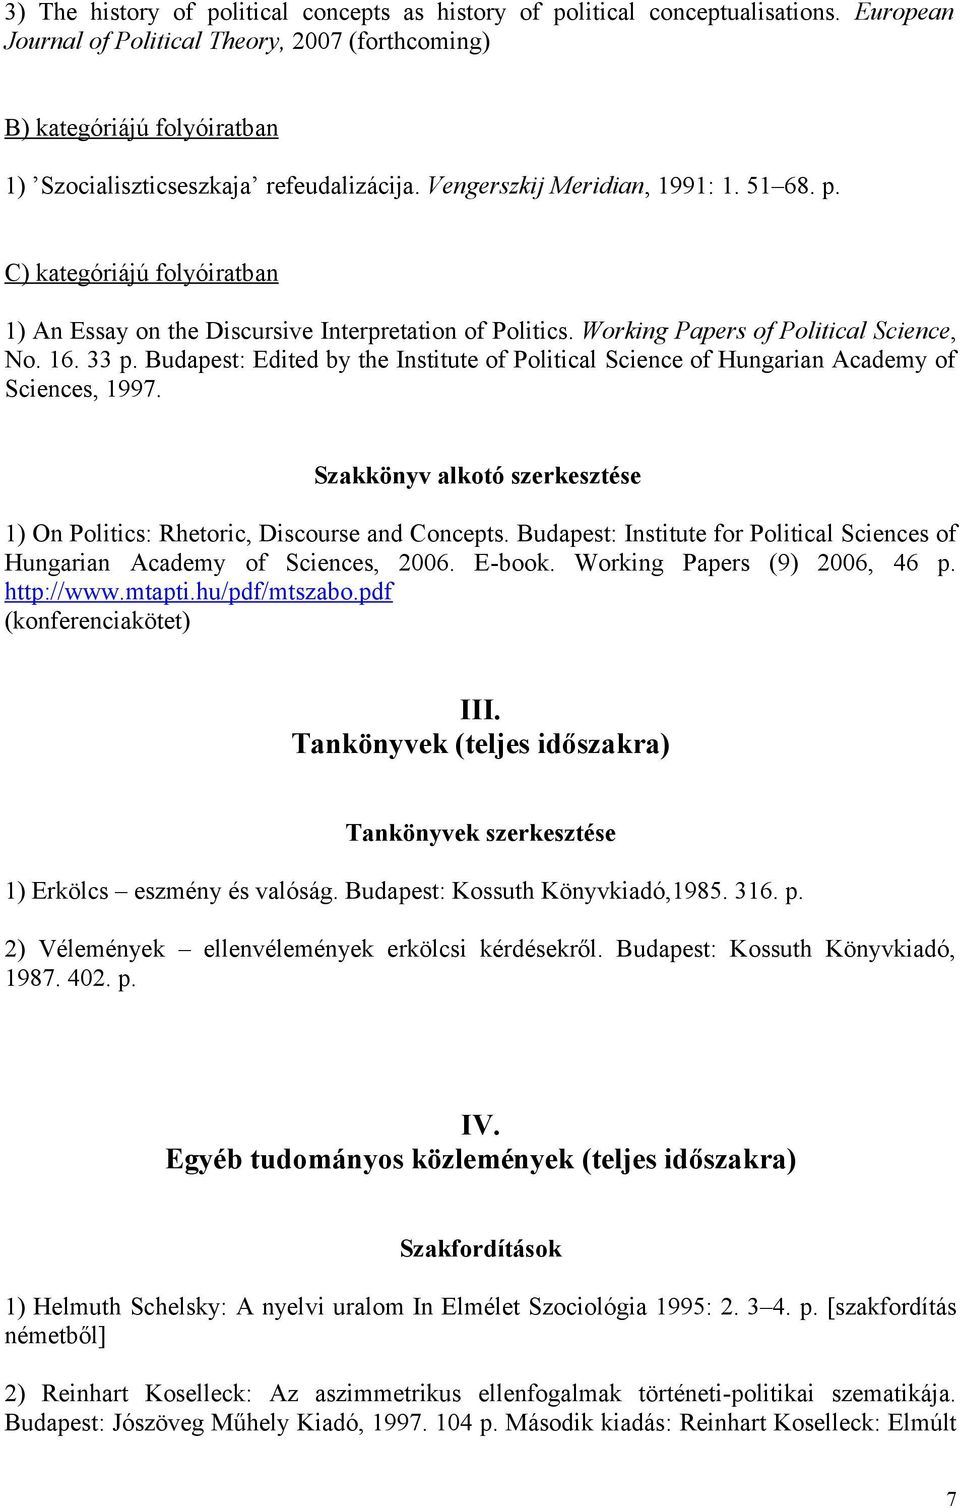 C) kategóriájú folyóiratban 1) An Essay on the Discursive Interpretation of Politics. Working Papers of Political Science, No. 16. 33 p.